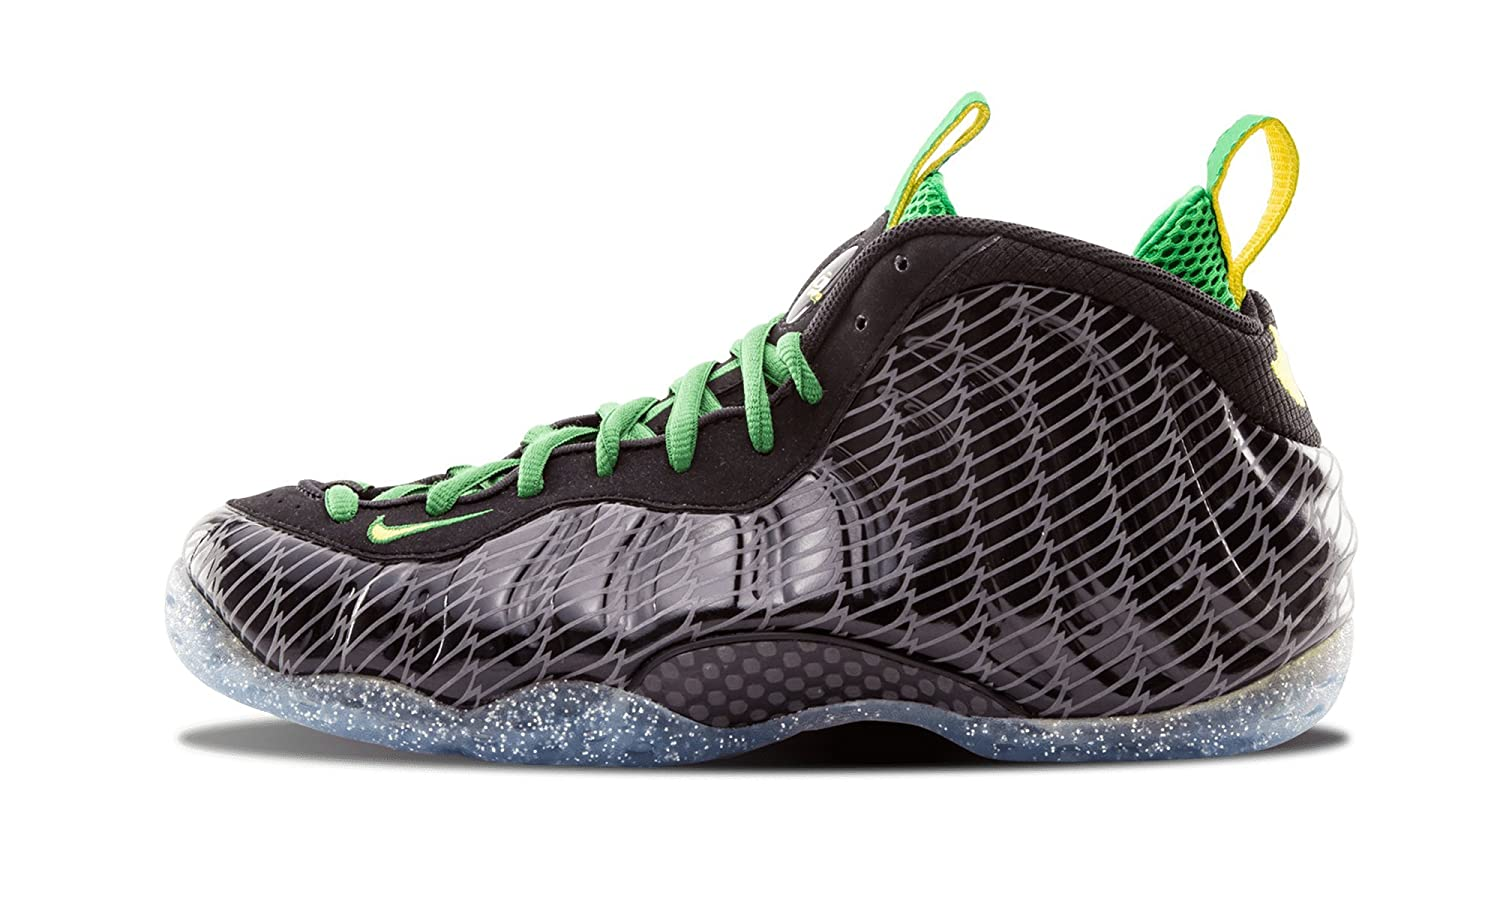 acc90e5a40e Amazon.com  Nike Air Foamposite One PRM UO QS - 7.5